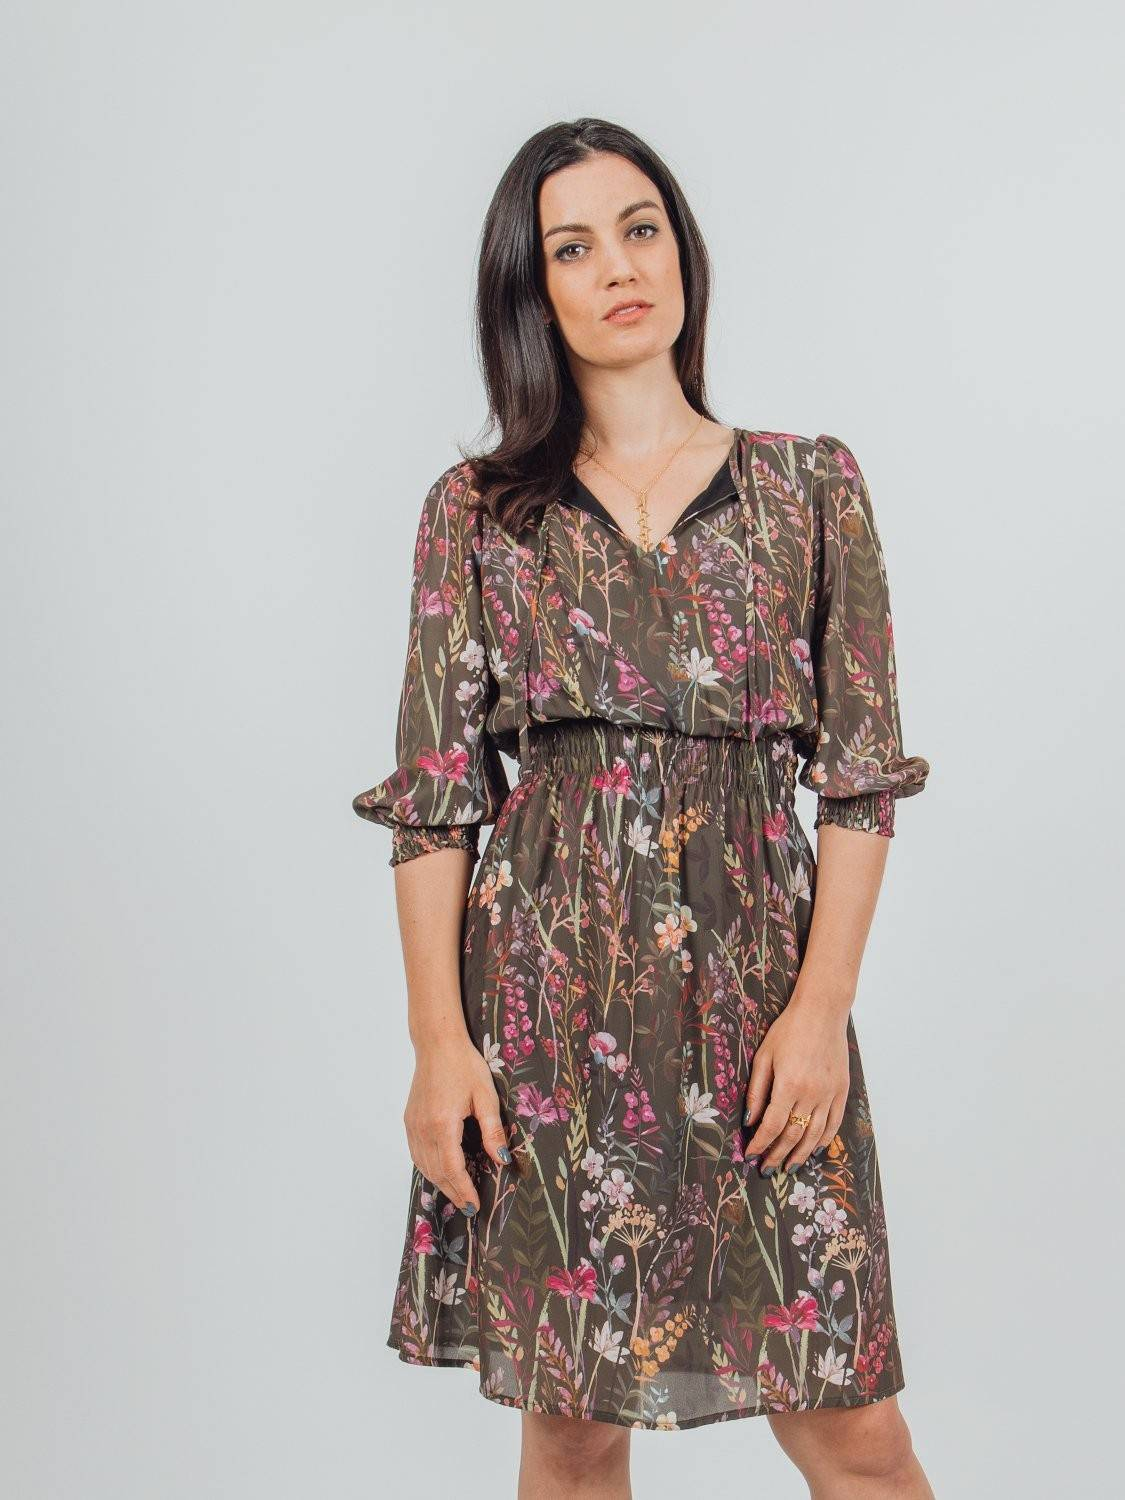 knee-length dress with v neck and wide blouson sleeves frilled at the hem